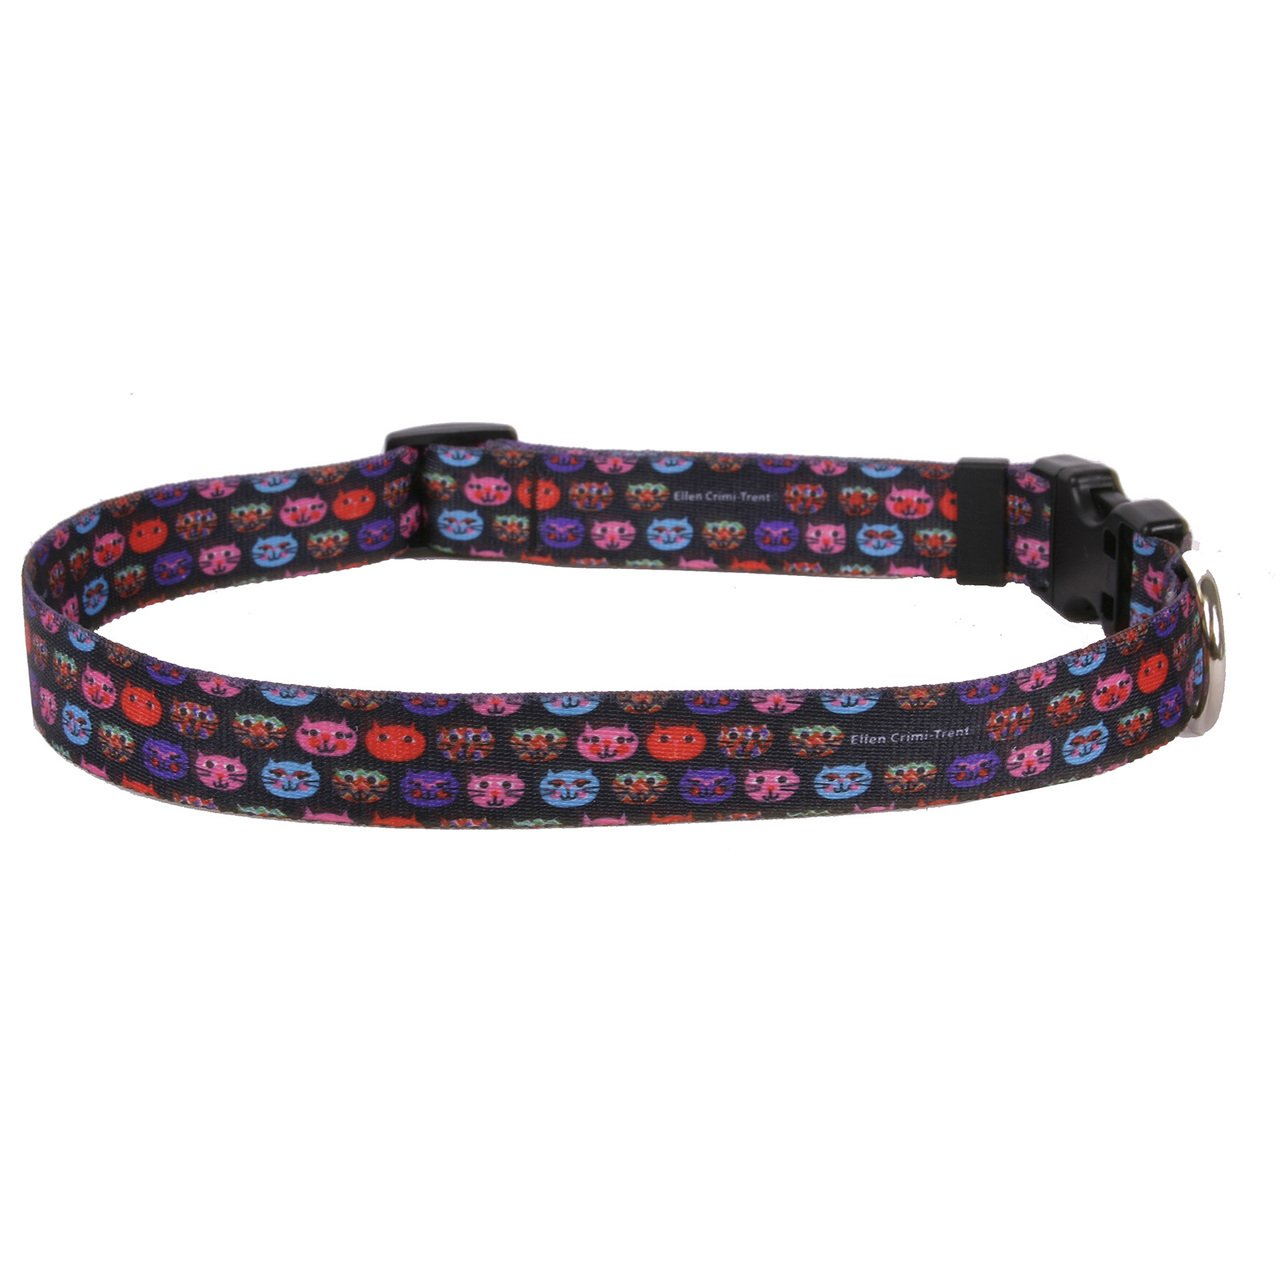 Yellow Dog Design Cat Faces Dog Collar 1'' Wide And Fits Neck 18 To 28'', Large